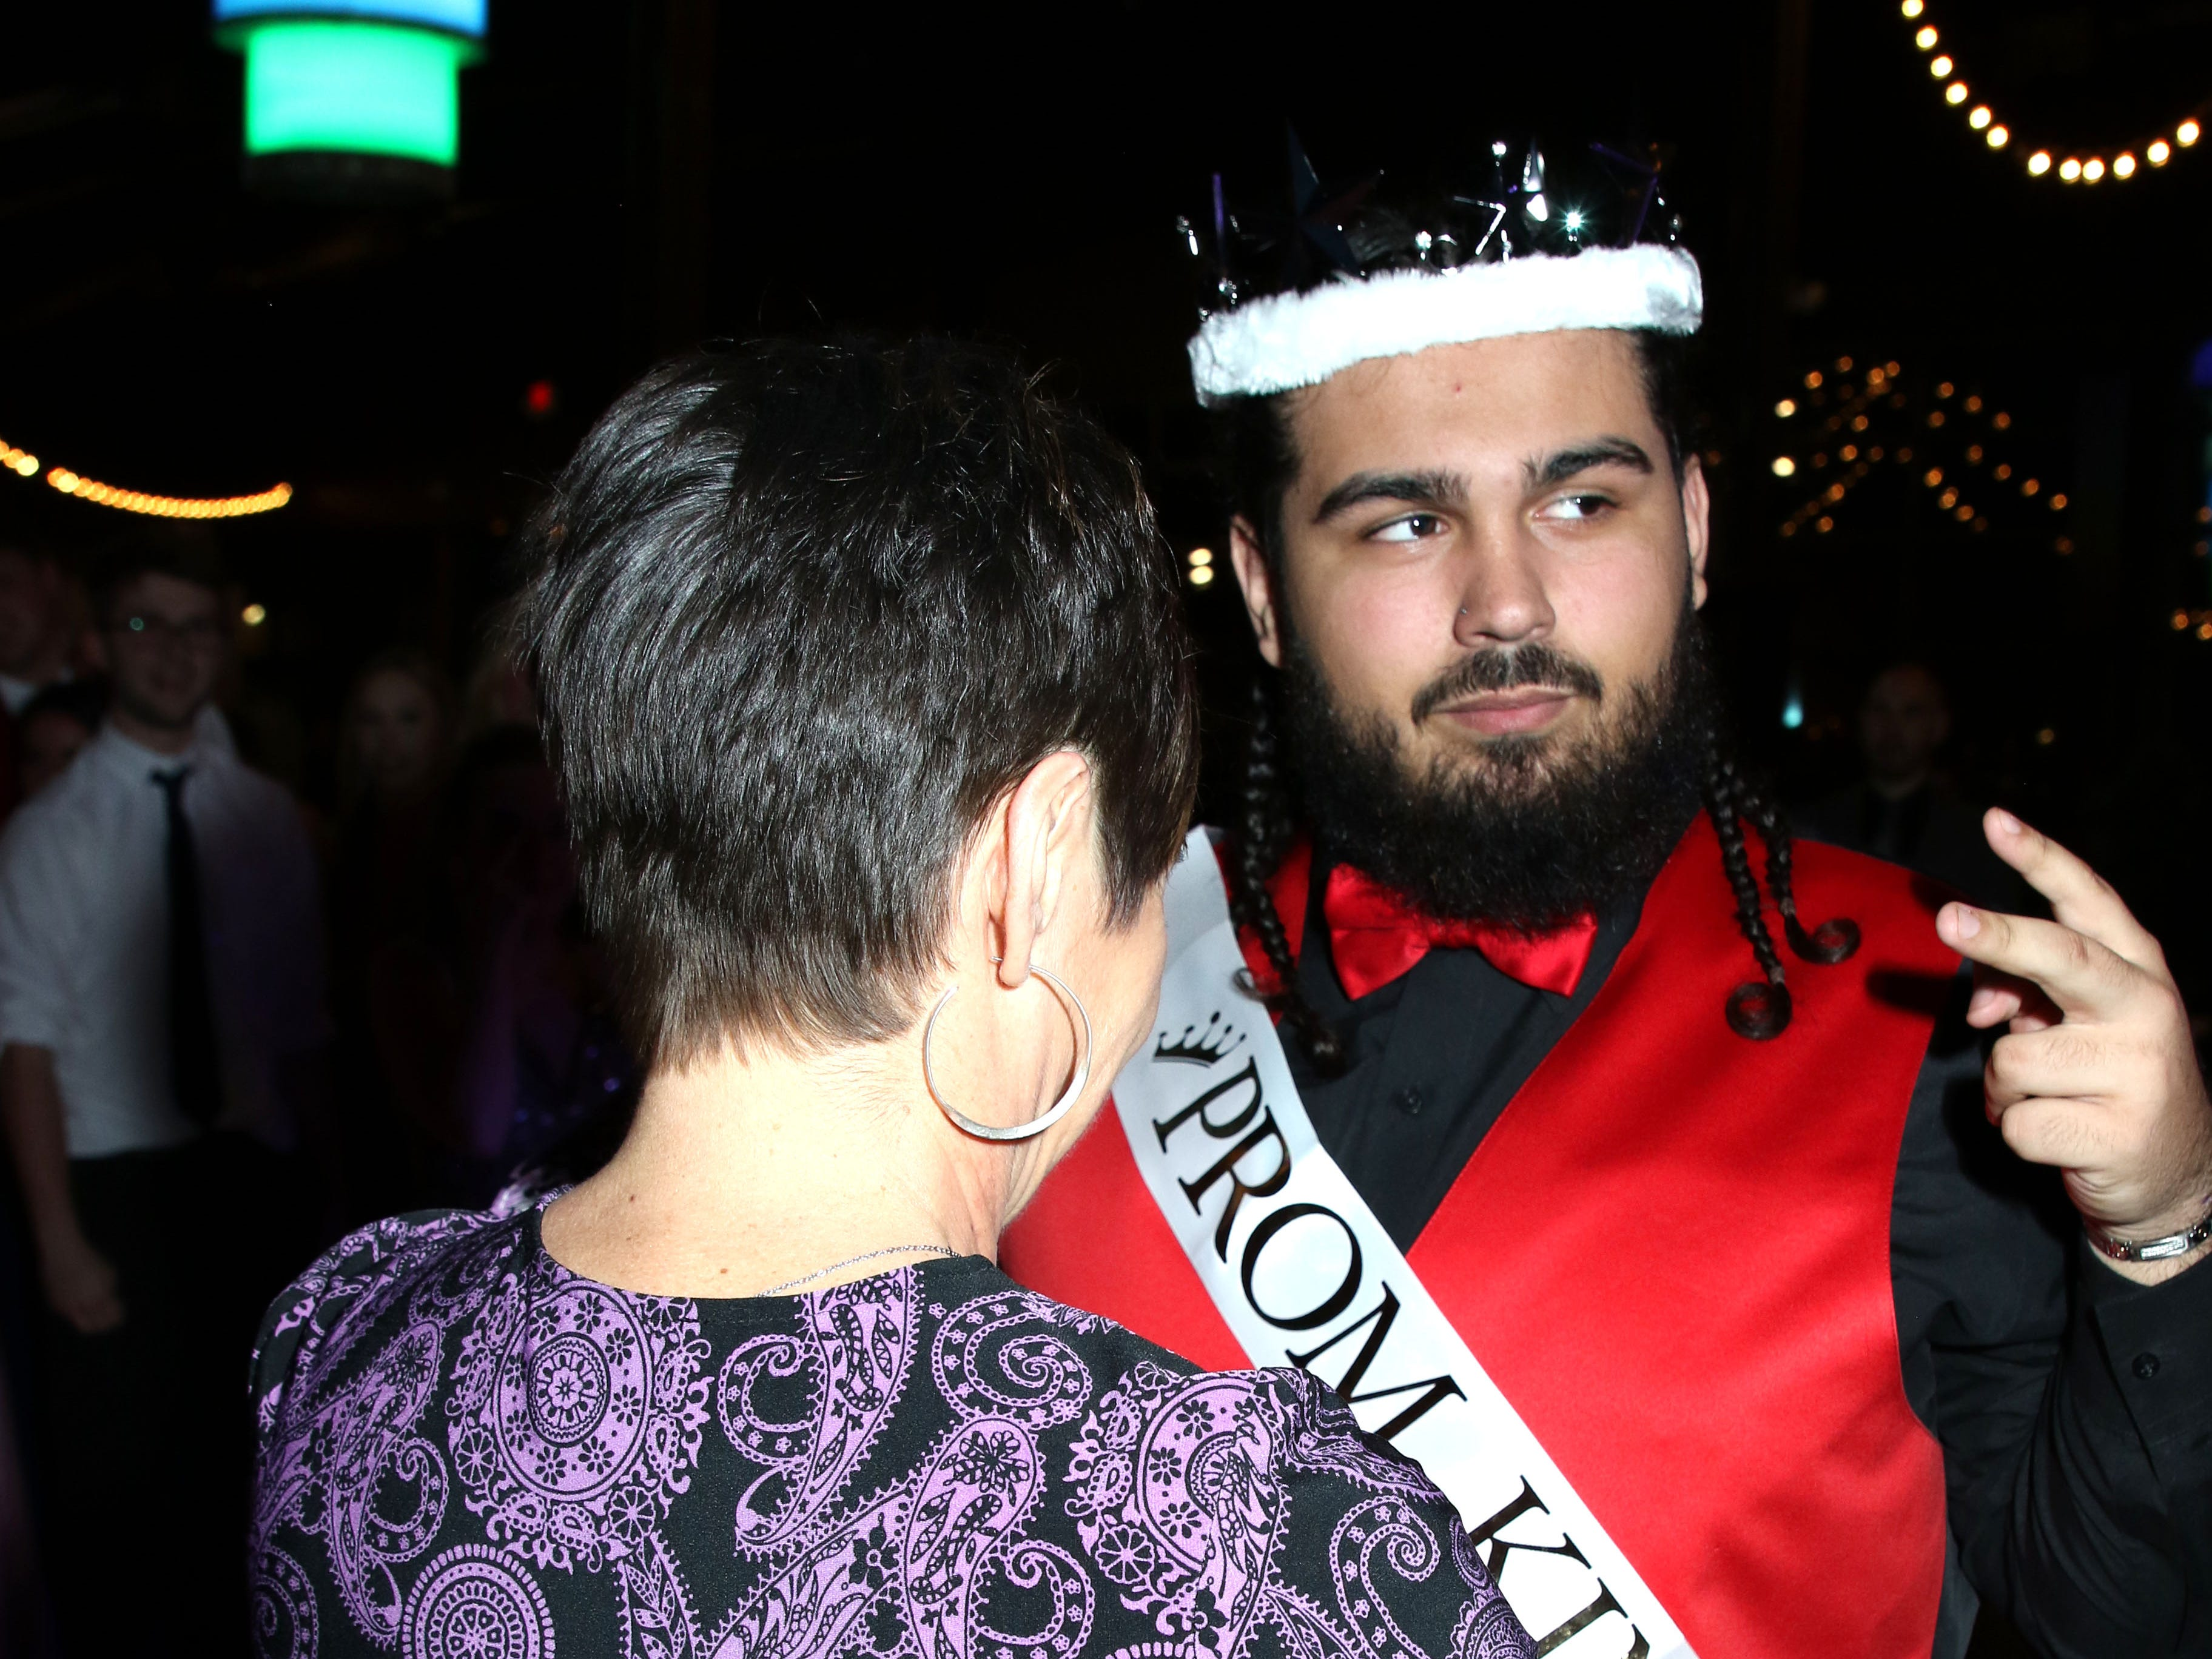 Reece Taylor was crowned King. Port Clinton's 2019 Prom was held Saturday, April 27th at Lyman Harbor in Sandusky.